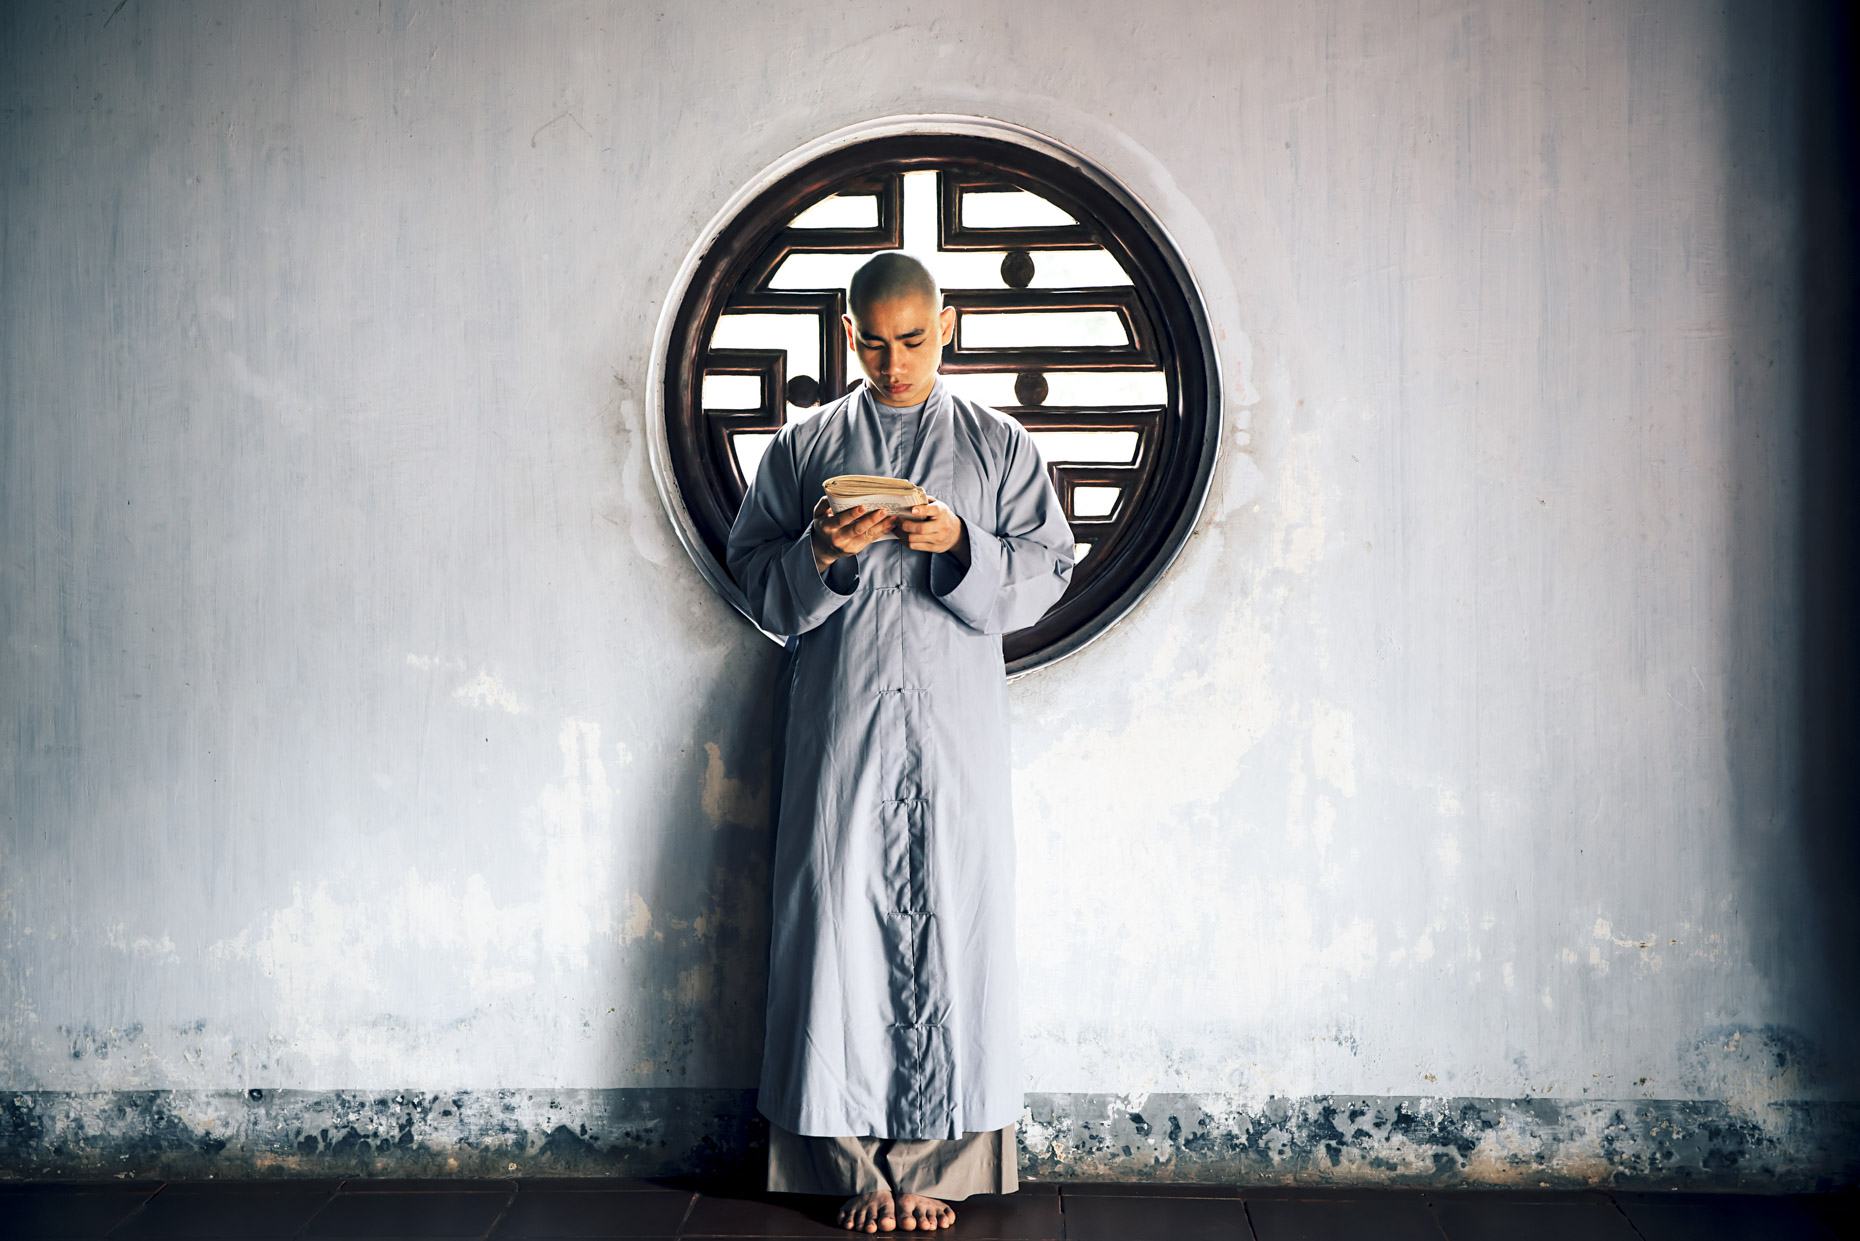 Buddhist Monk standing and reading in Vietnam